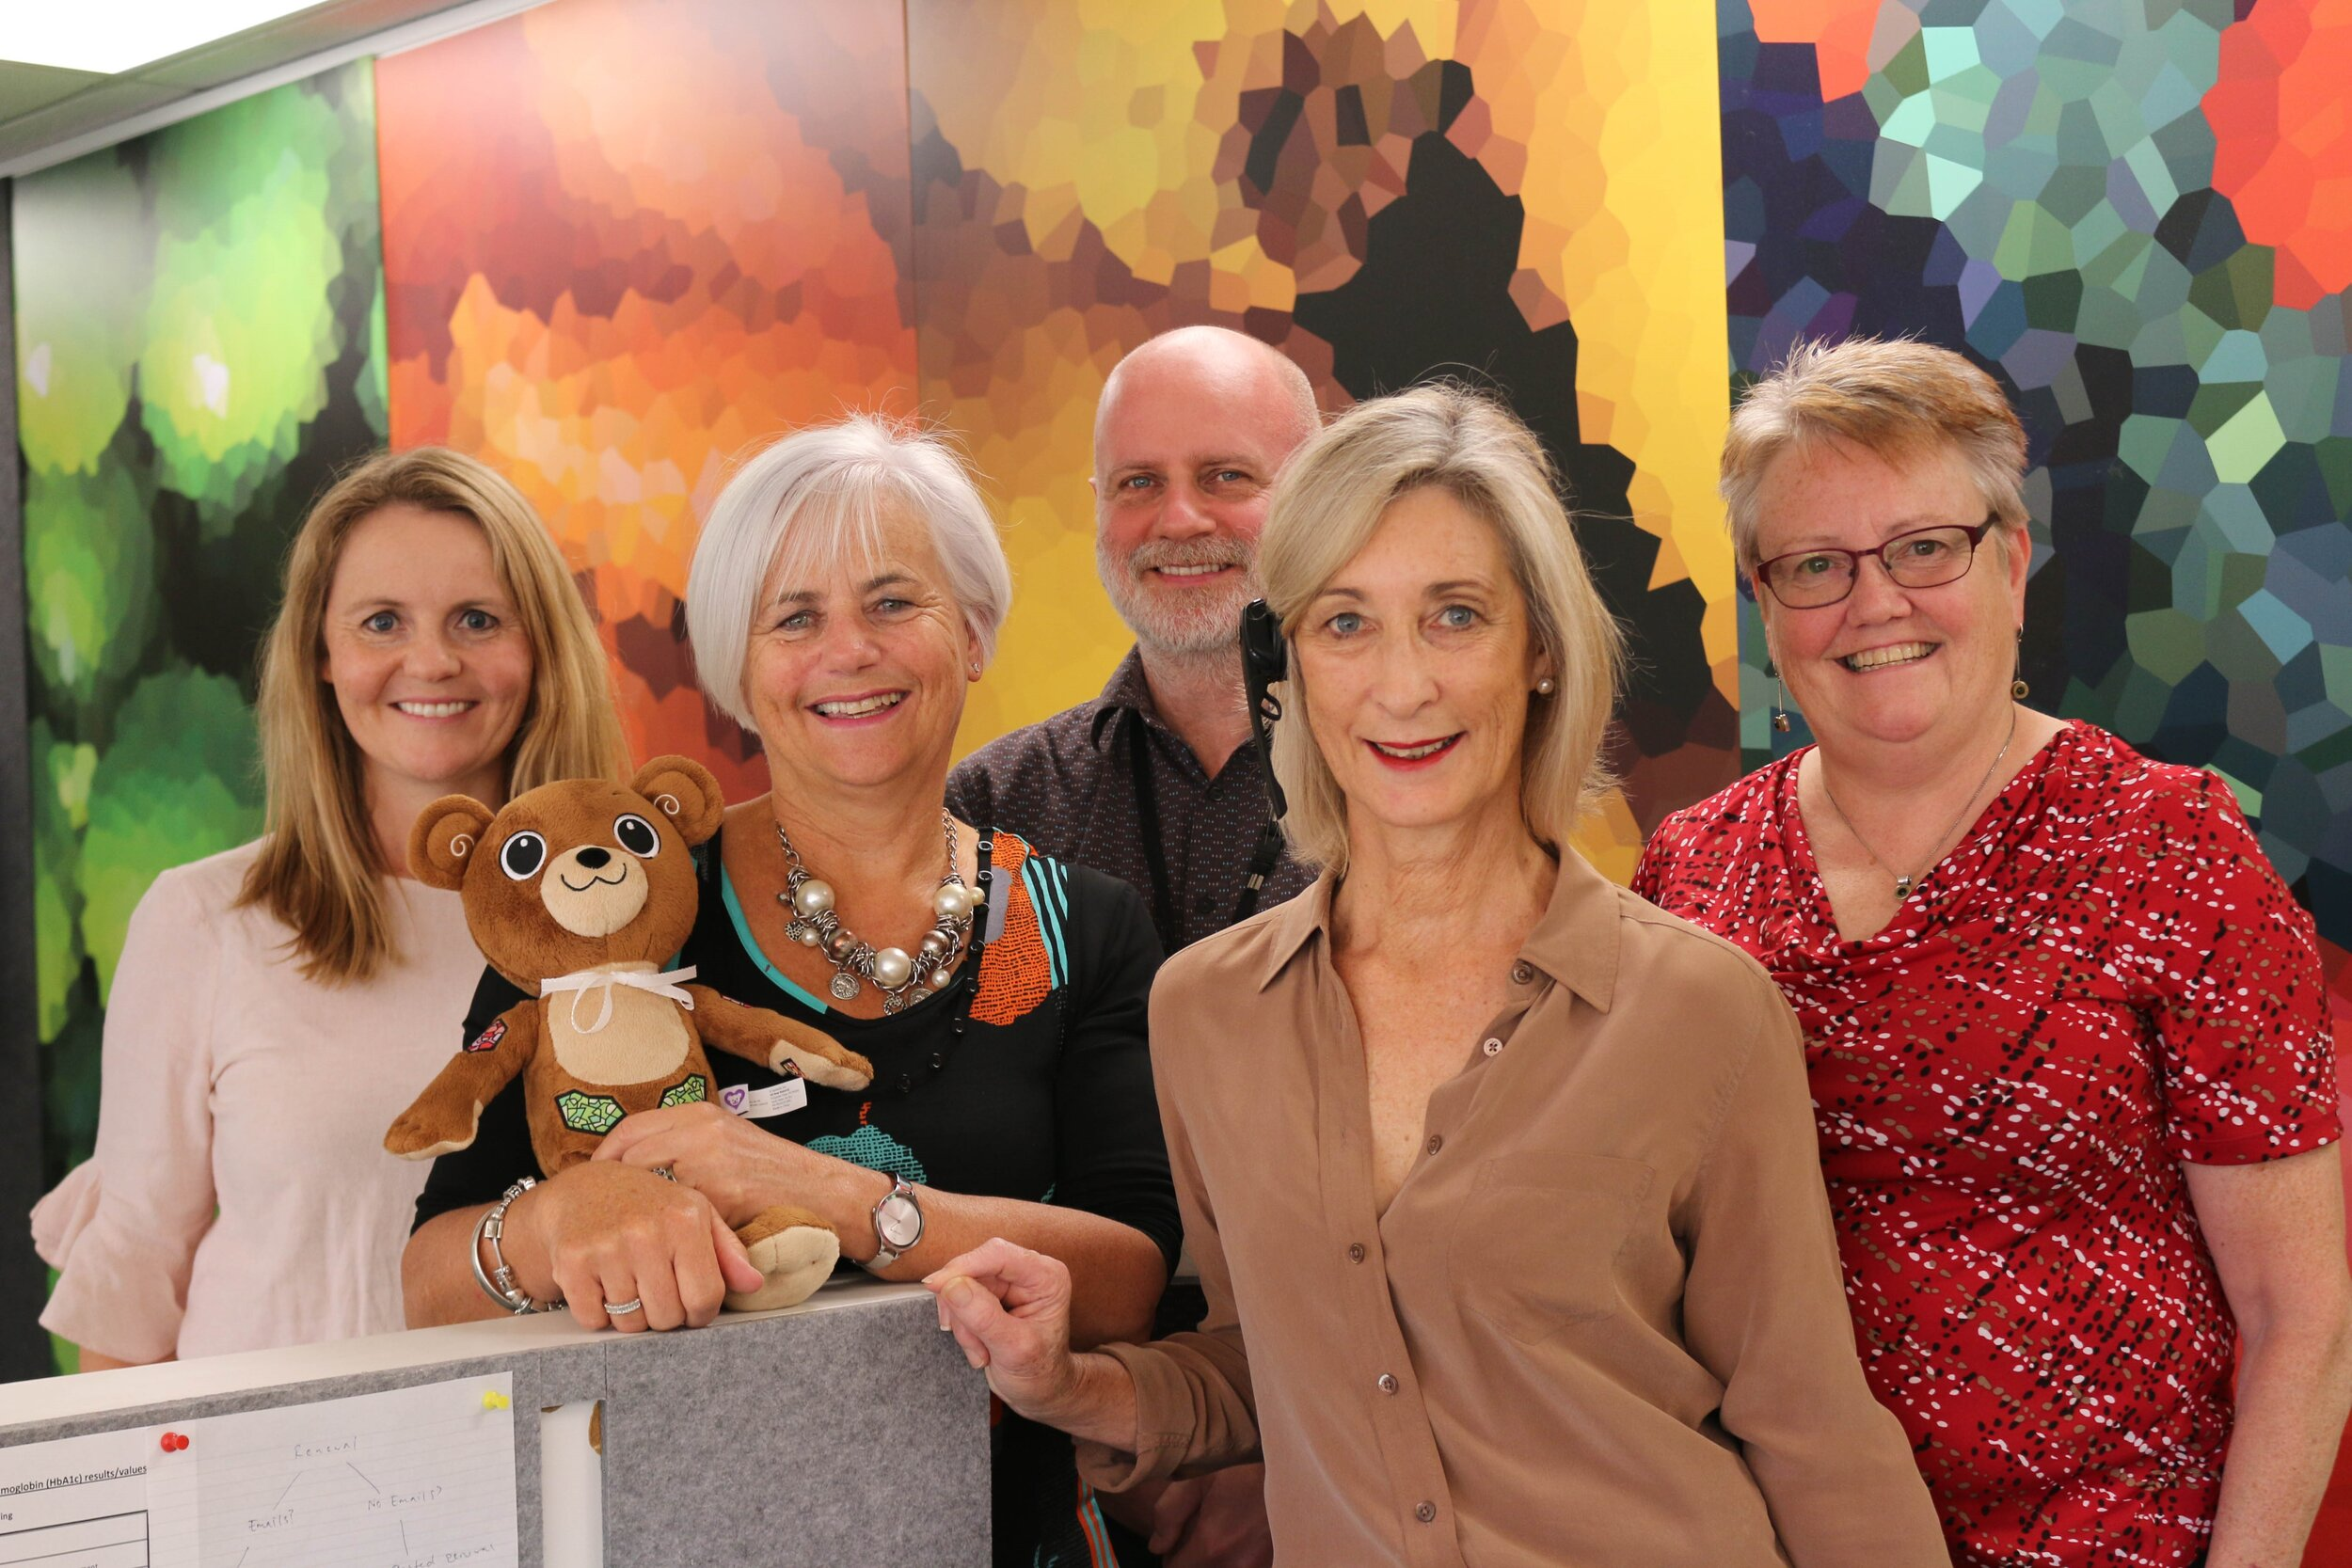 Some of the team at the Diabetes NZ office: (from left) Marsha Mackie, Heather Verry with Jerry the Bear, Stephen Jarvis, Nicky Steel and Liz Dutton